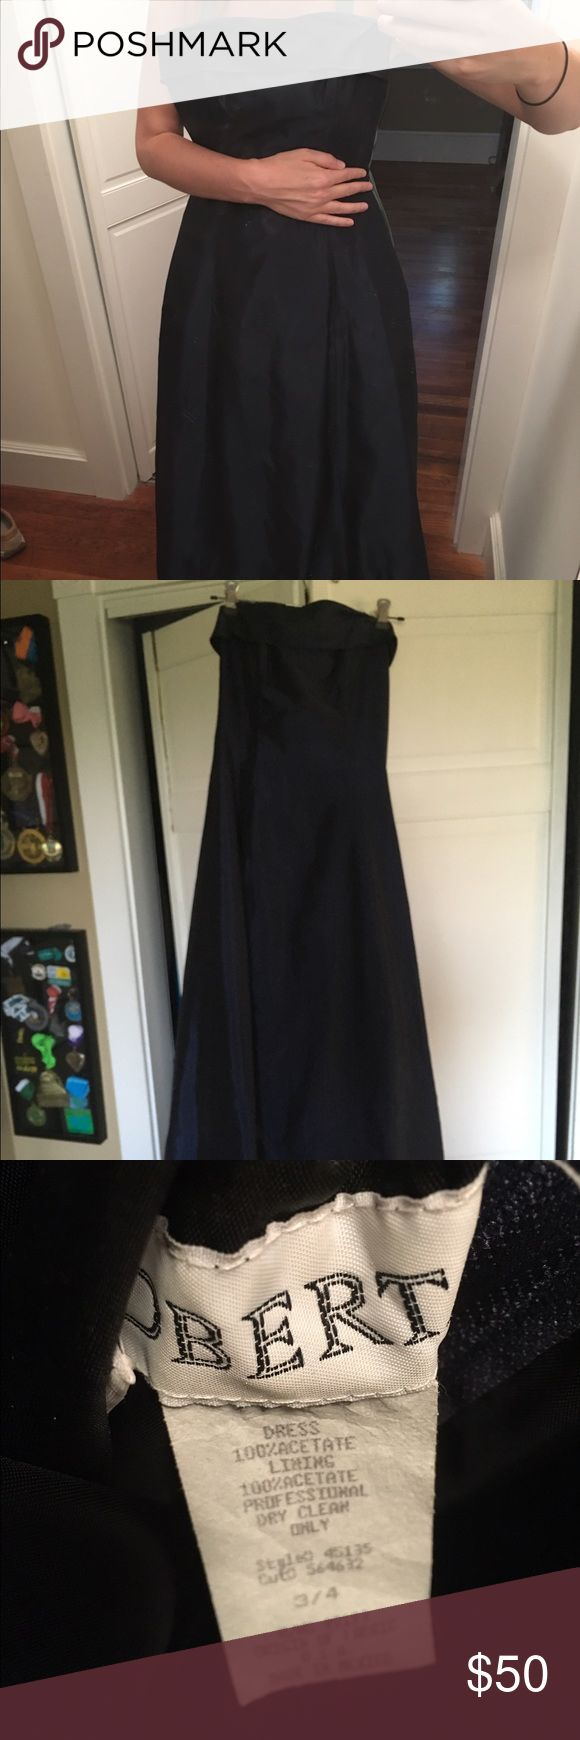 Navy strapless gown This great navy blue prom dress has been in storage and in great condition! Toile under the skirt gives a little poof with a fitted bodice. Strapless. Floor length. A few spots of minor discoloring on top from being stored with a metal hangar clipped on but barely noticeable (see pic). Size 3/4 juniors. Would fit size 0-2 adult woman likely. Shiny material, see tag pic for specifics. Bought at Macy's years ago for $120. Comes with matching shawl/shoulder wrap! Best…